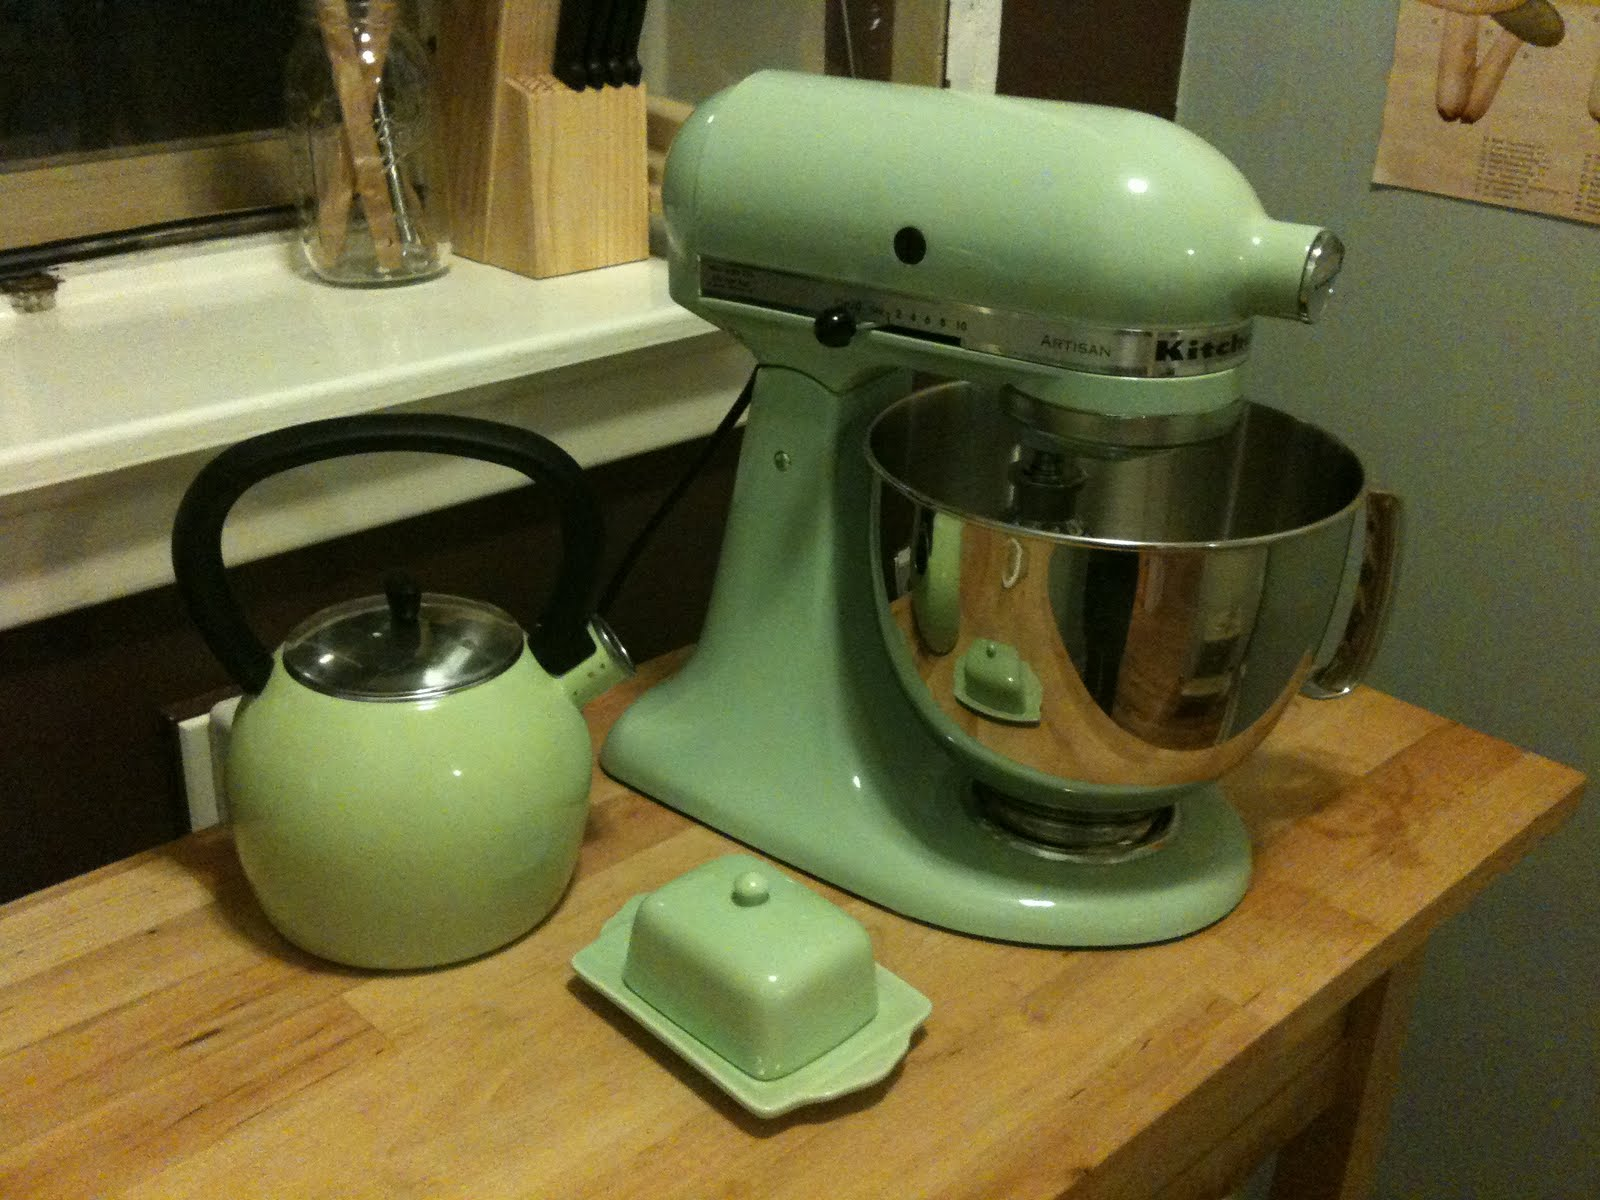 The KitchenAid 5-Quart Artisan Stand Mixer: All The Details You ...